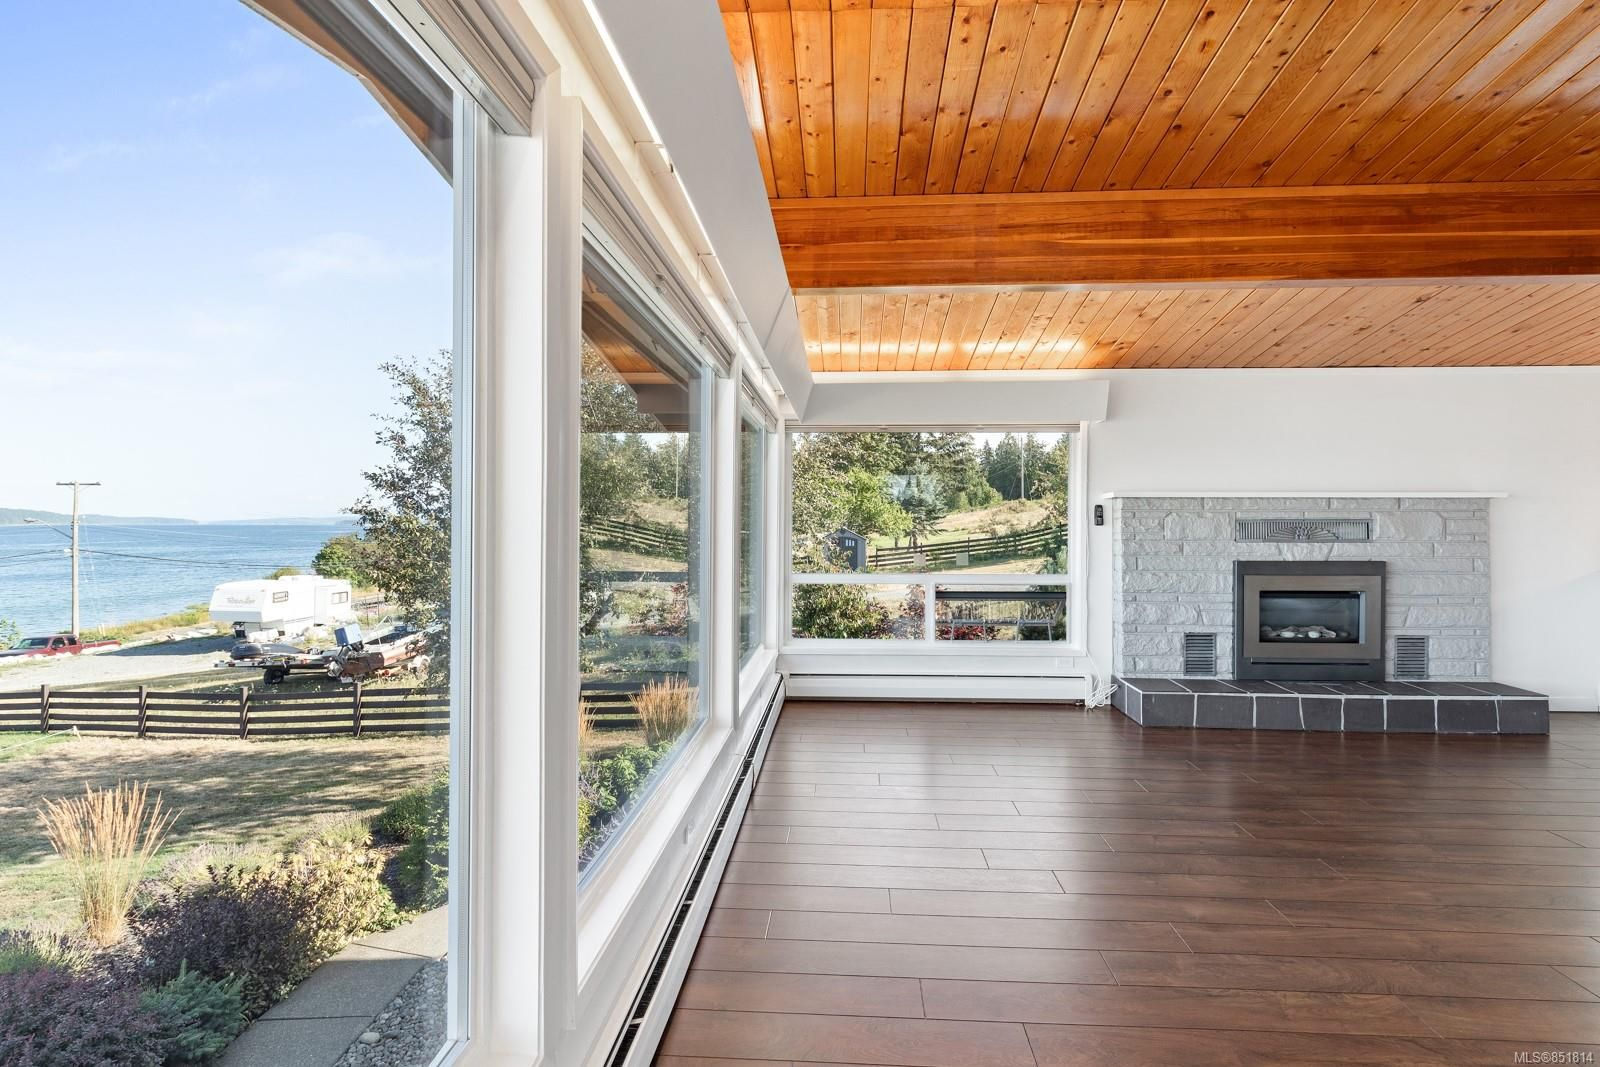 Photo 9: Photos: 191 Muschamp Rd in : CV Union Bay/Fanny Bay House for sale (Comox Valley)  : MLS®# 851814